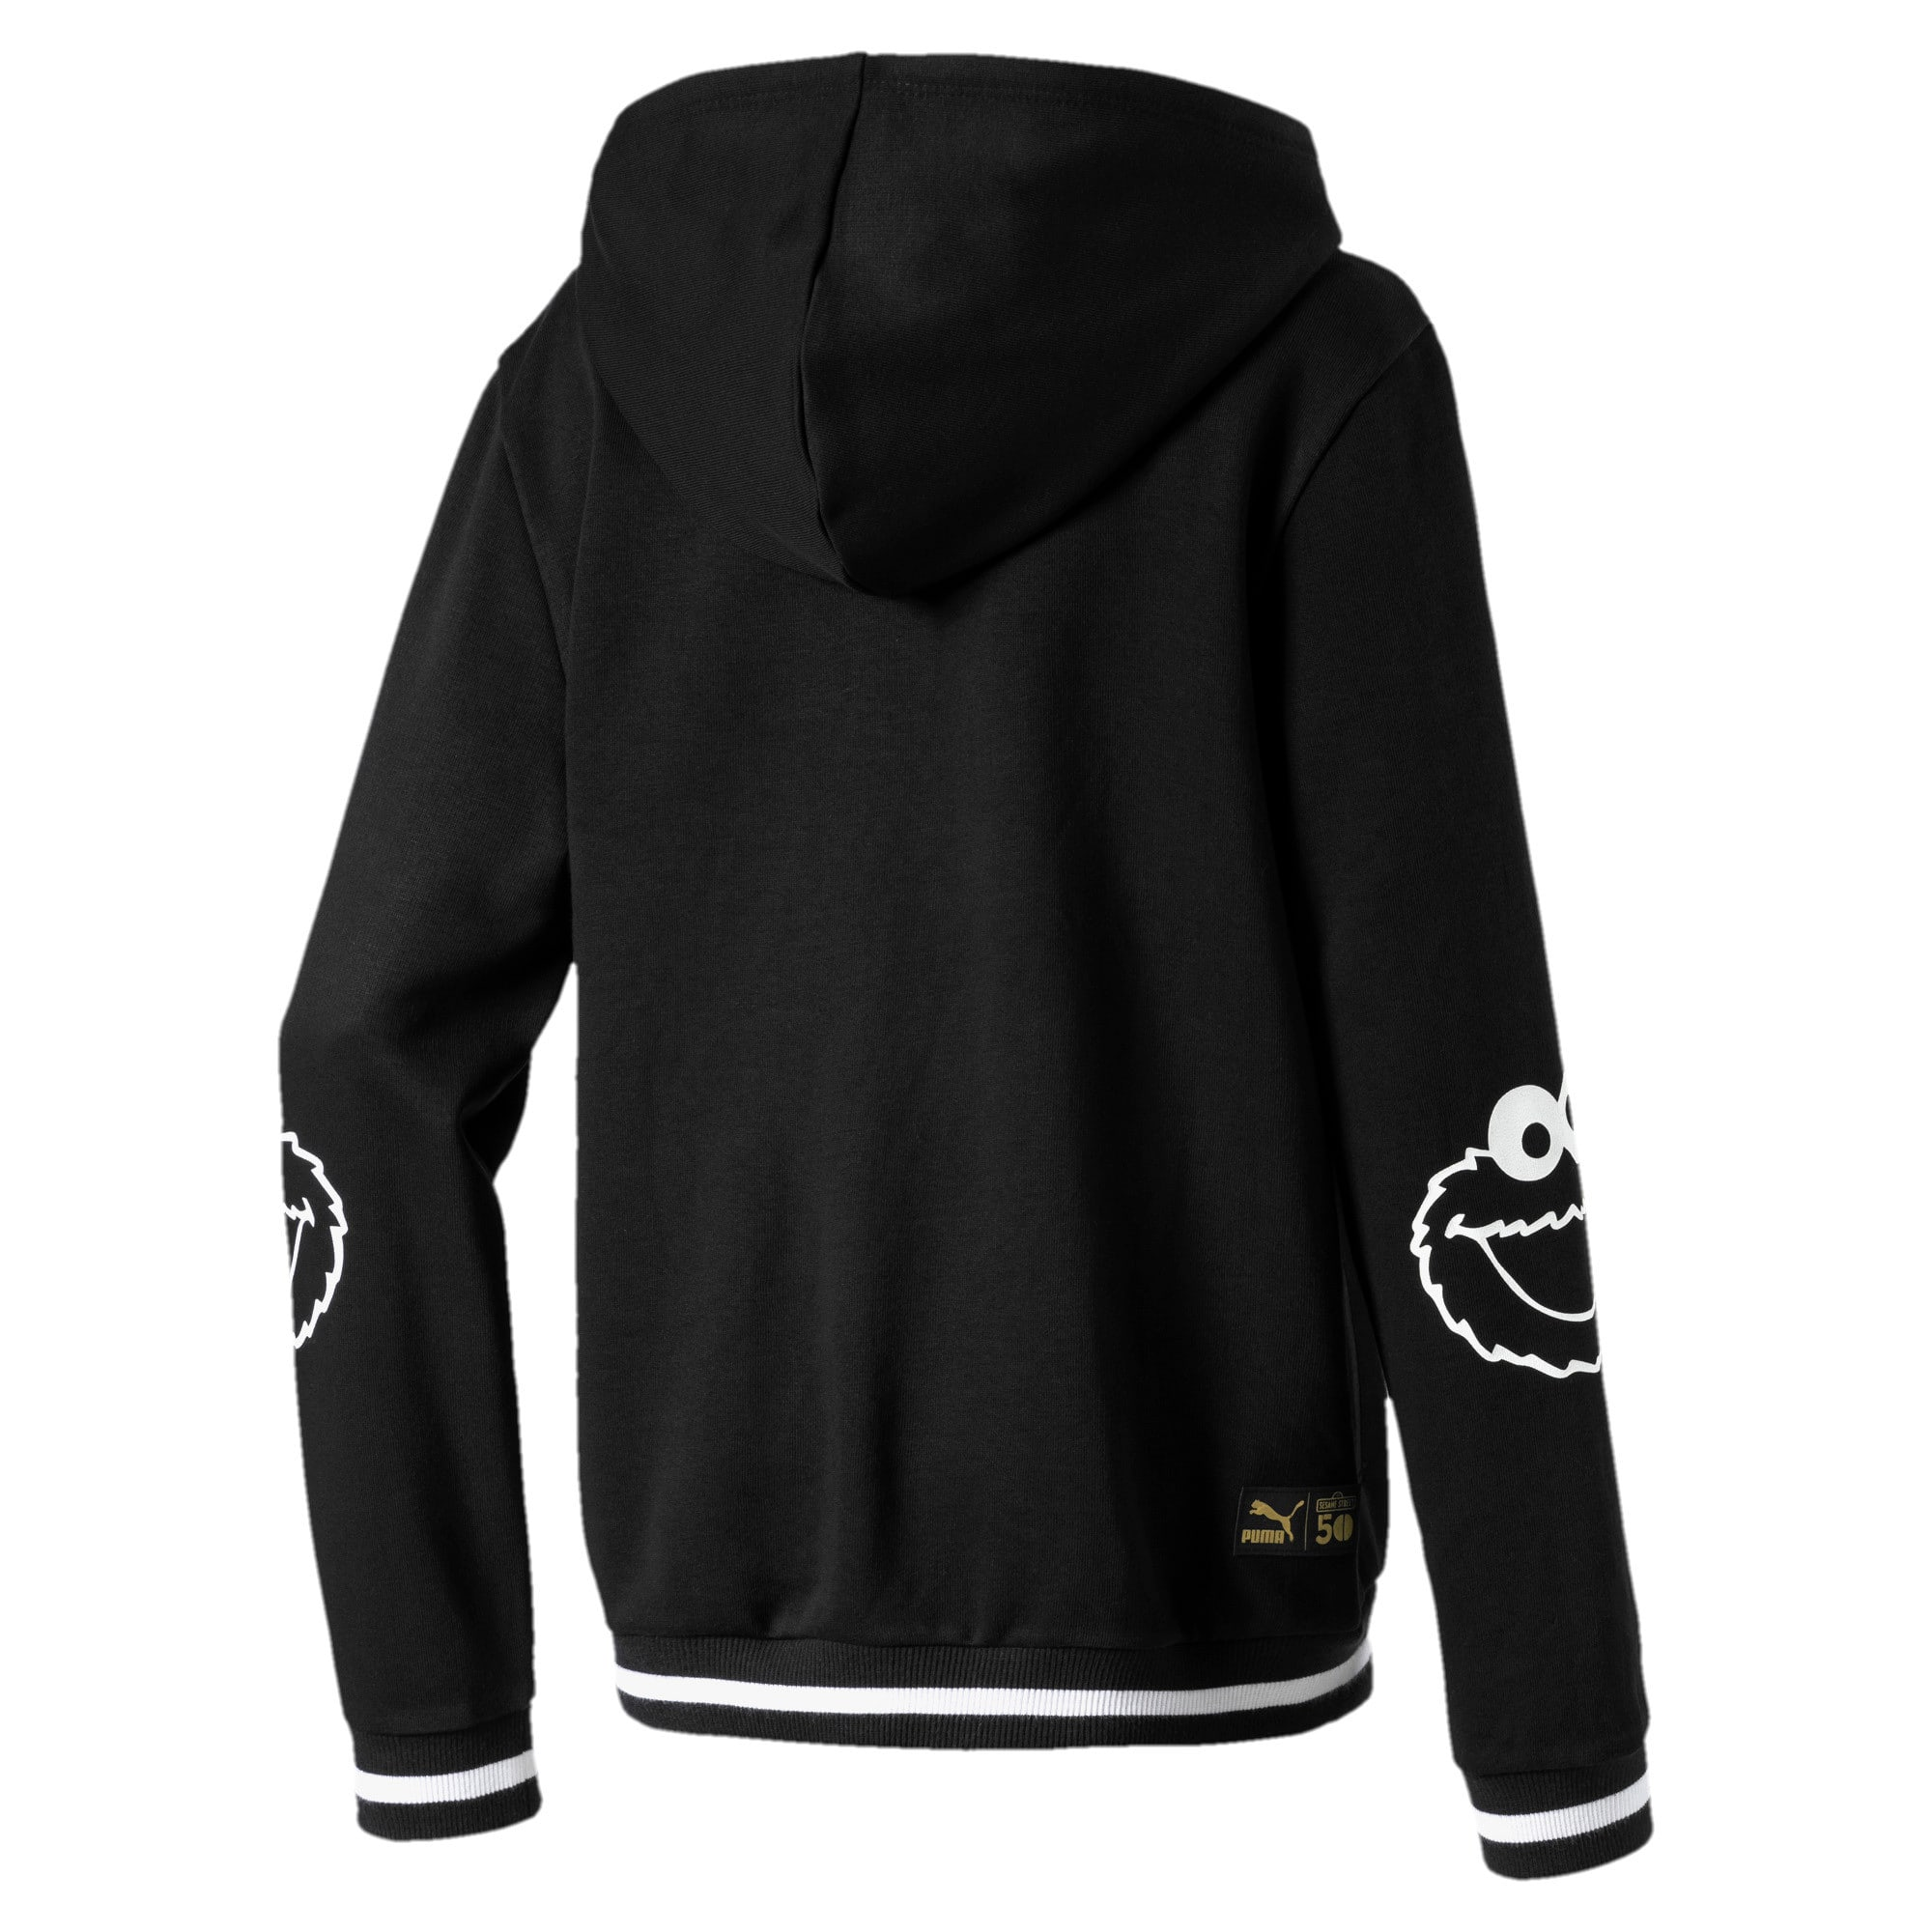 Thumbnail 2 of Sesame Street Boys' Hoodie, Puma Black, medium